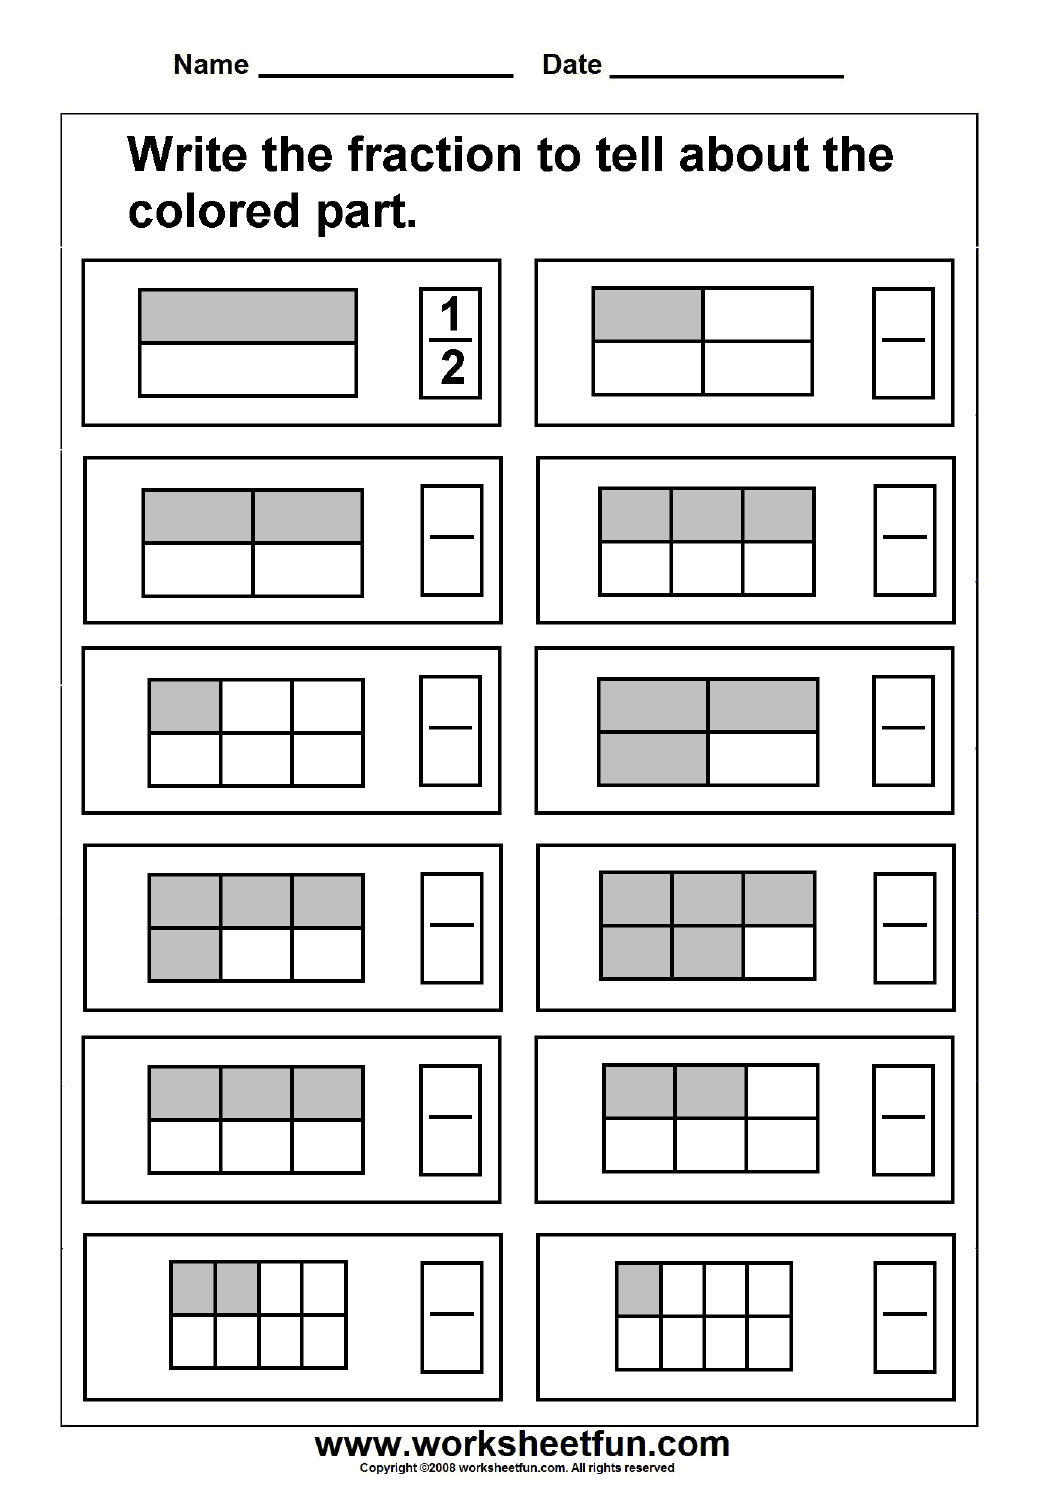 Fraction FREE Printable Worksheets Worksheetfun – Worksheet on Fractions